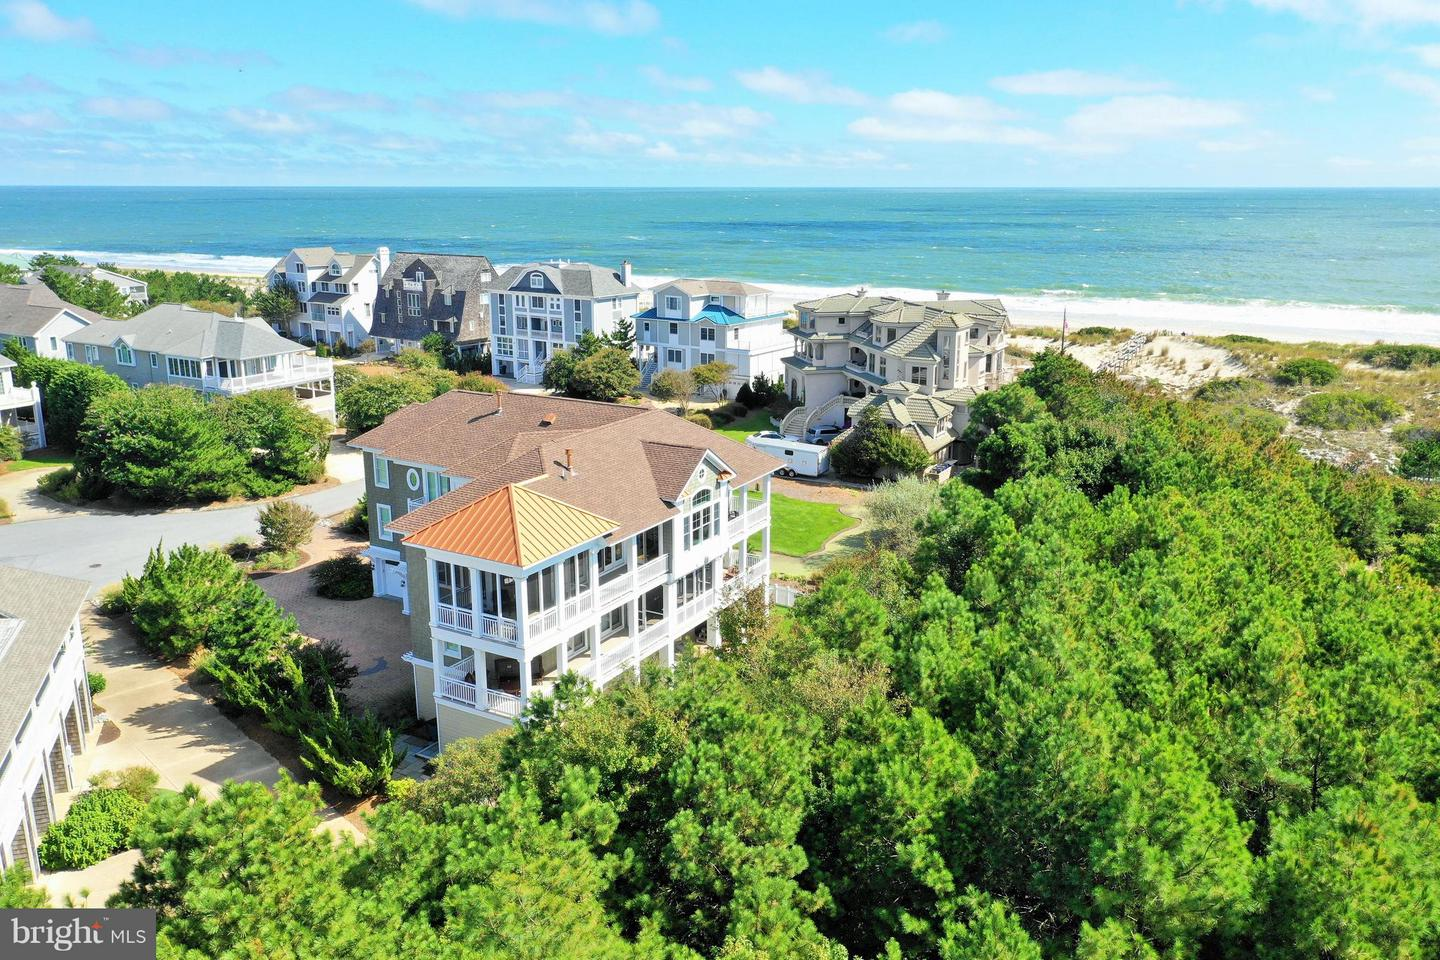 1002293530-300720129592-2018-09-25-15-08-25 31 Hall Ave | Rehoboth Beach, DE Real Estate For Sale | MLS# 1002293530  - Jack Lingo REALTOR